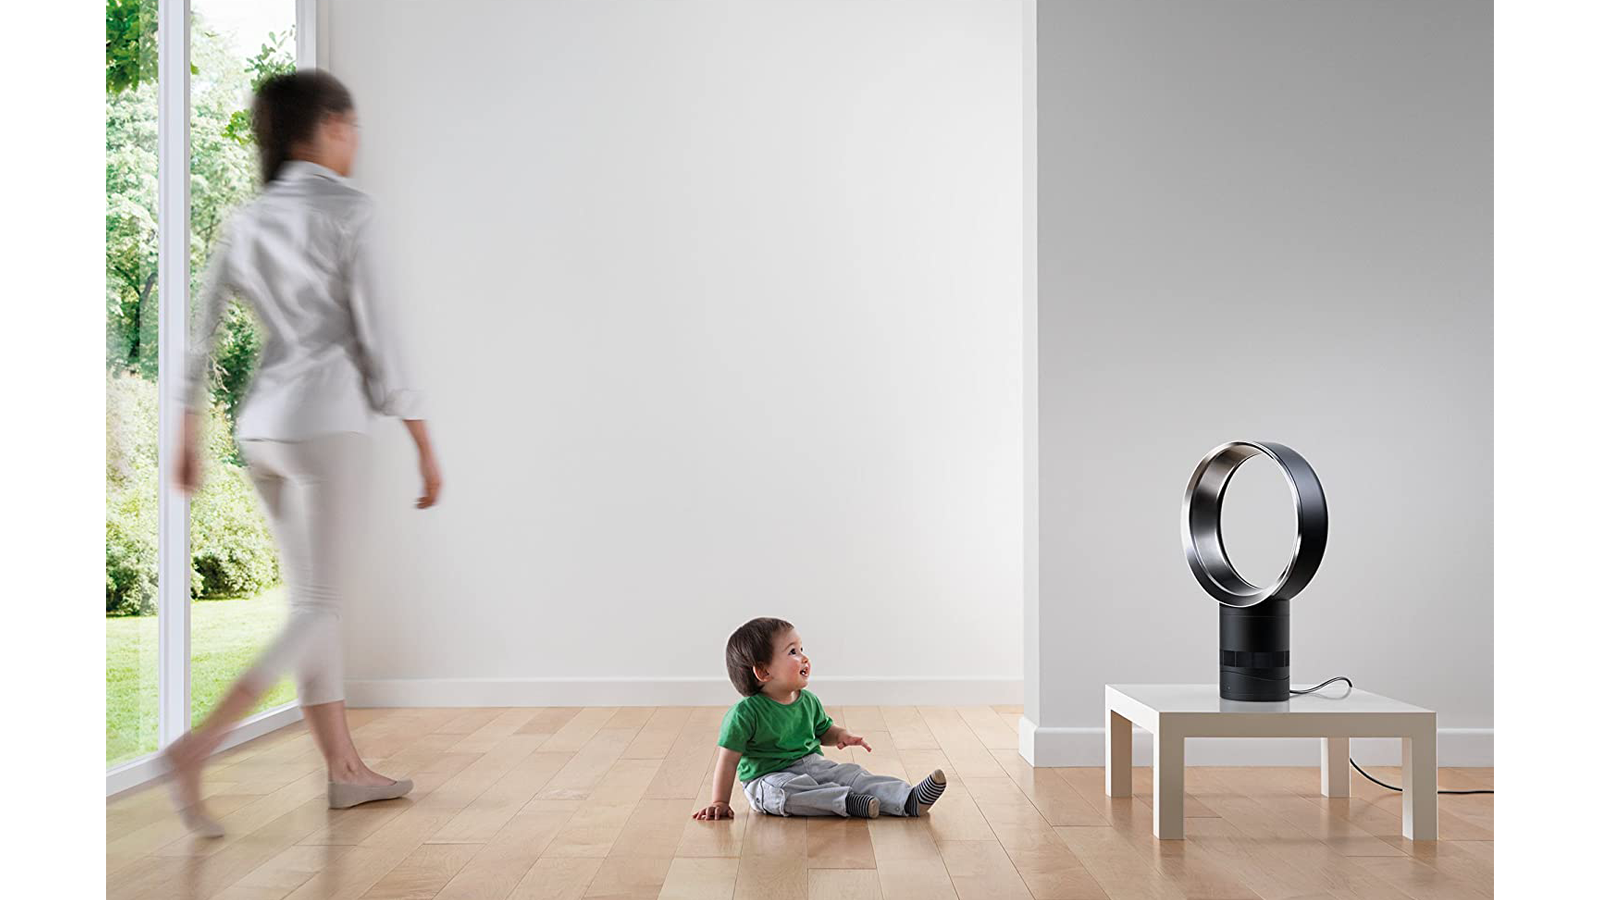 Dyson Air Multiplier AM06 premium bladeless fan in a living room with a mom and baby